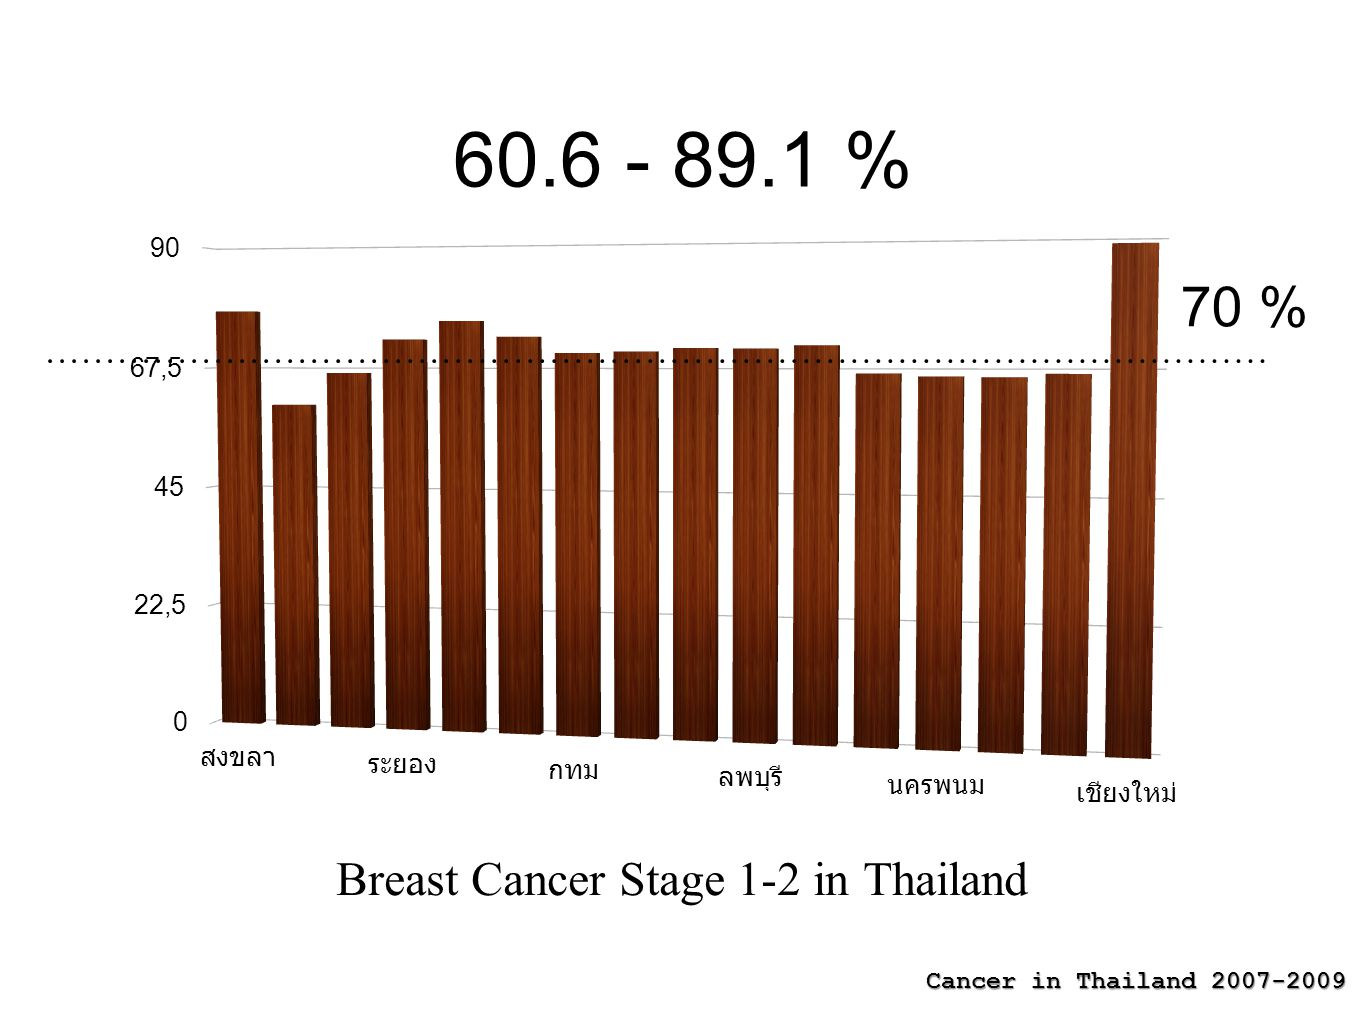 Breast Cancer Stage 1-2 in Thailand